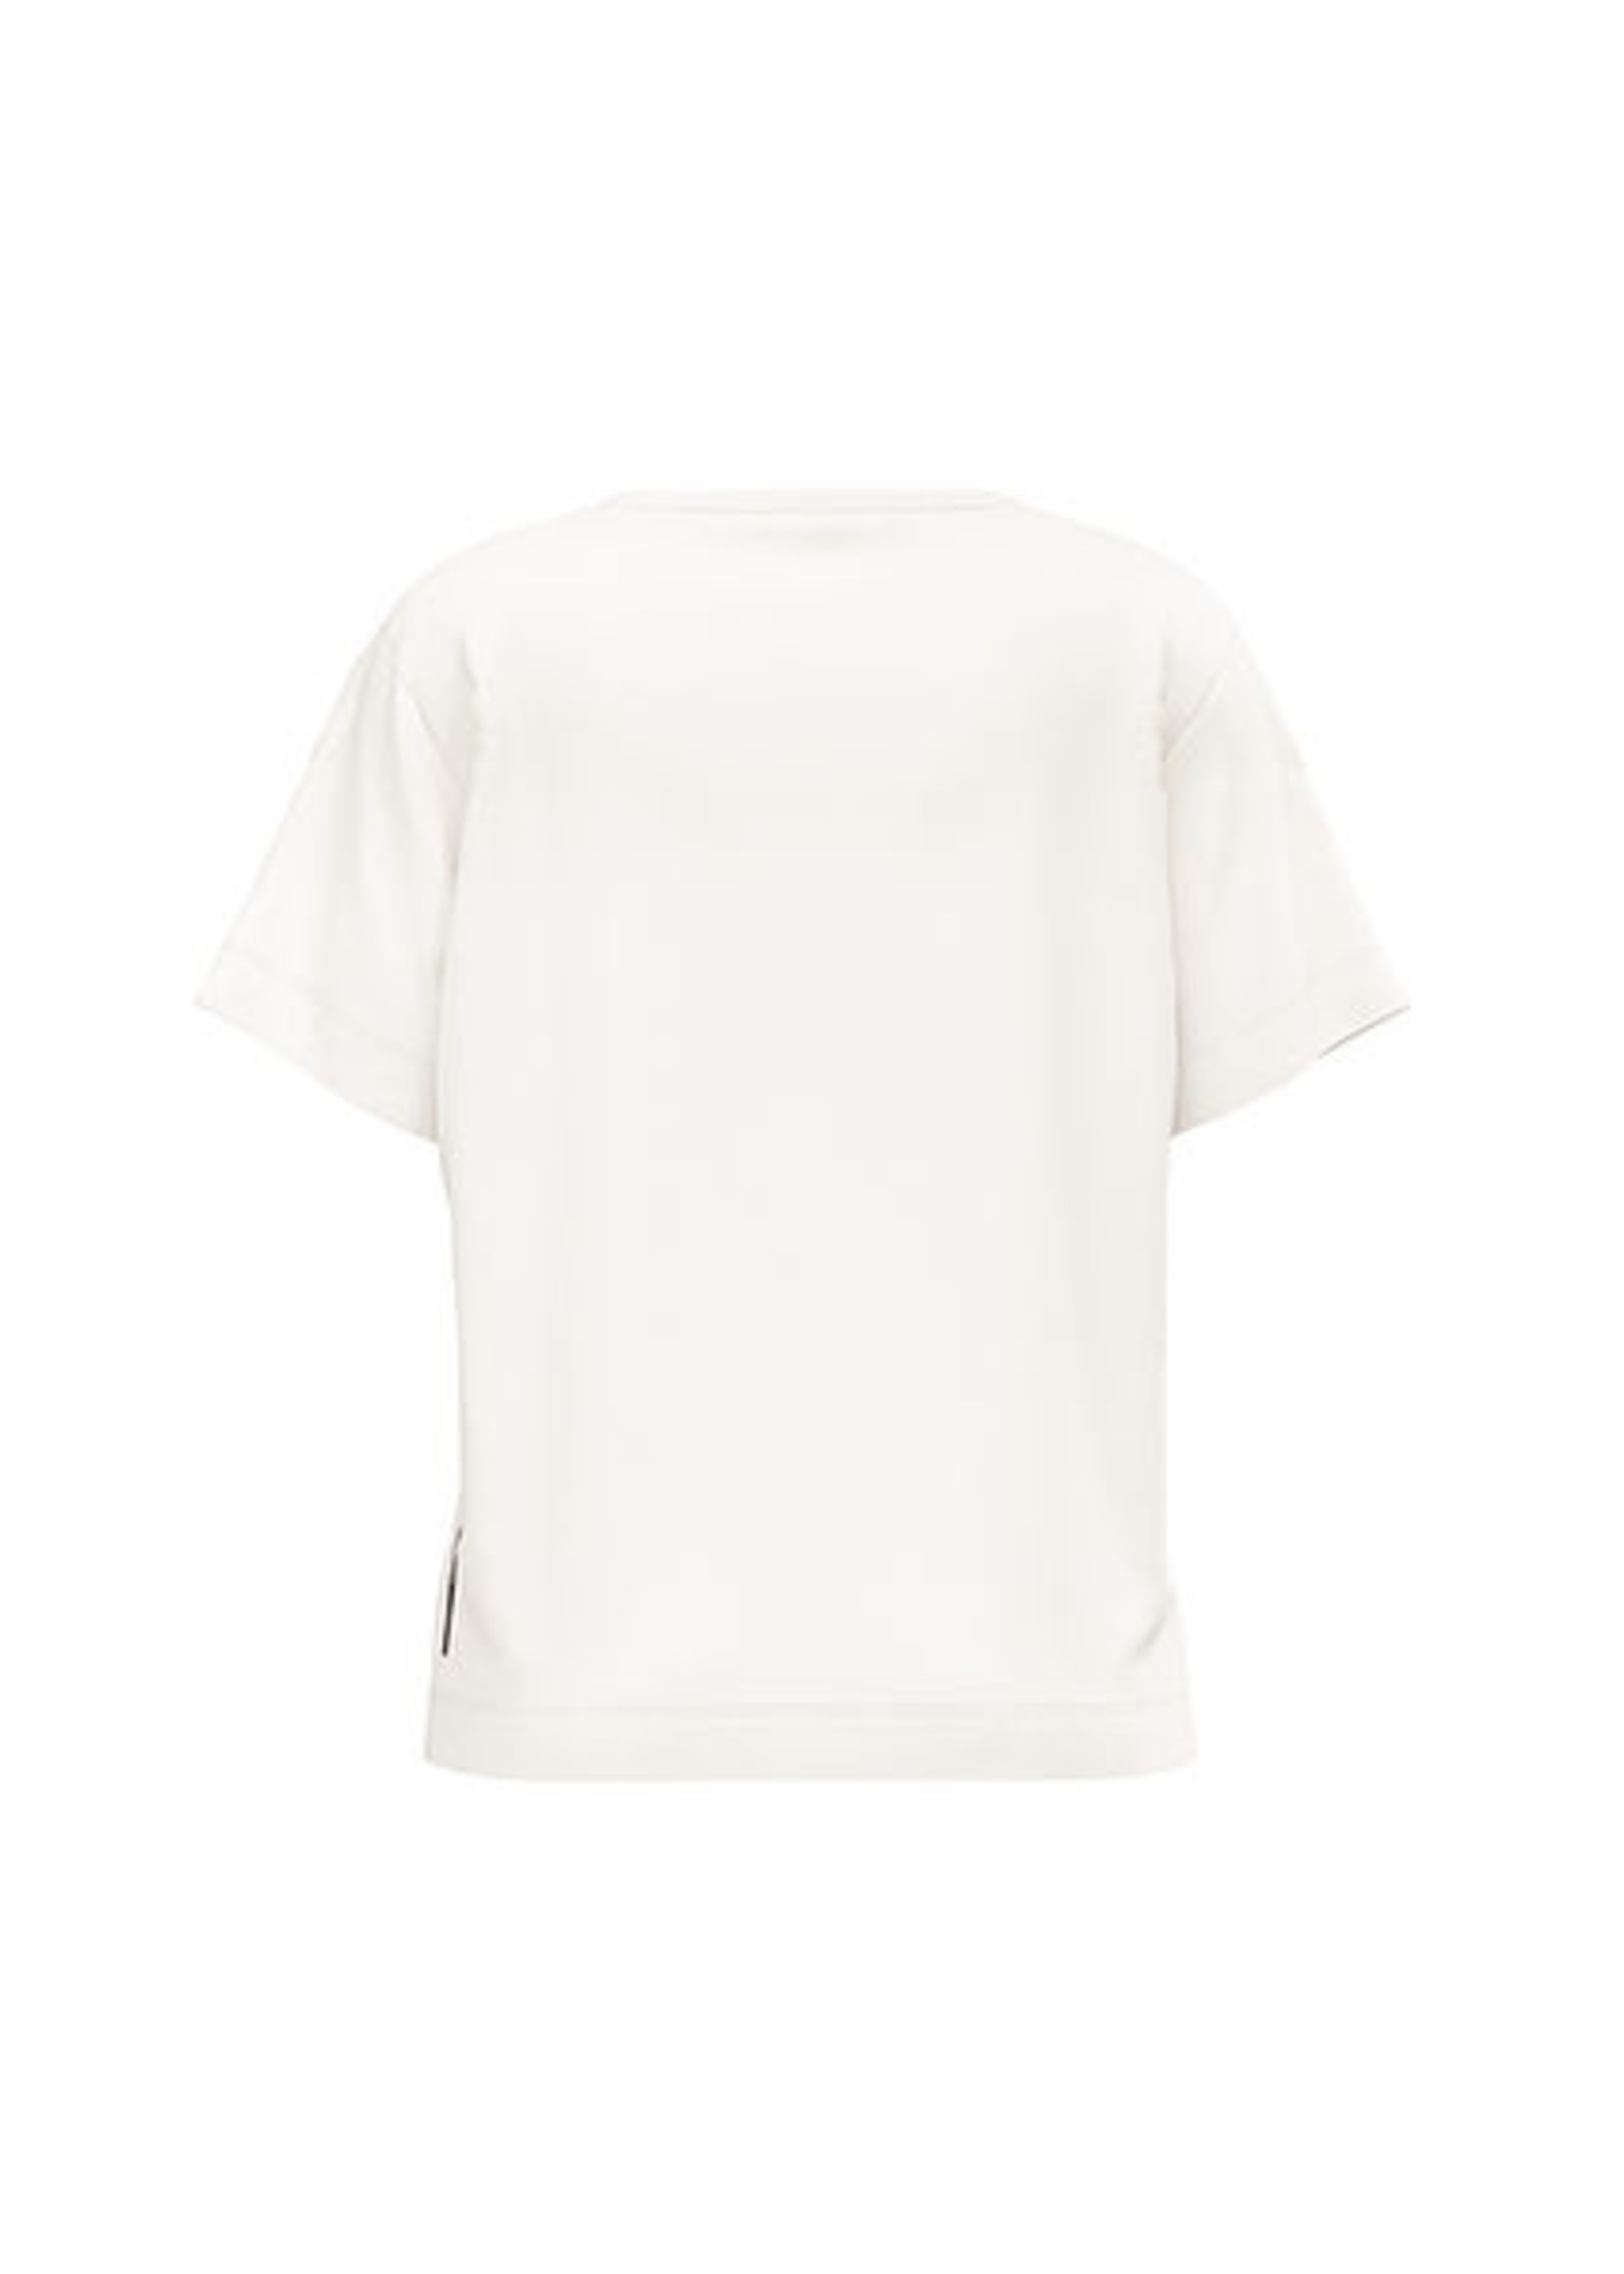 Marccain Sports T-shirt RS 48.51 J89 off-white